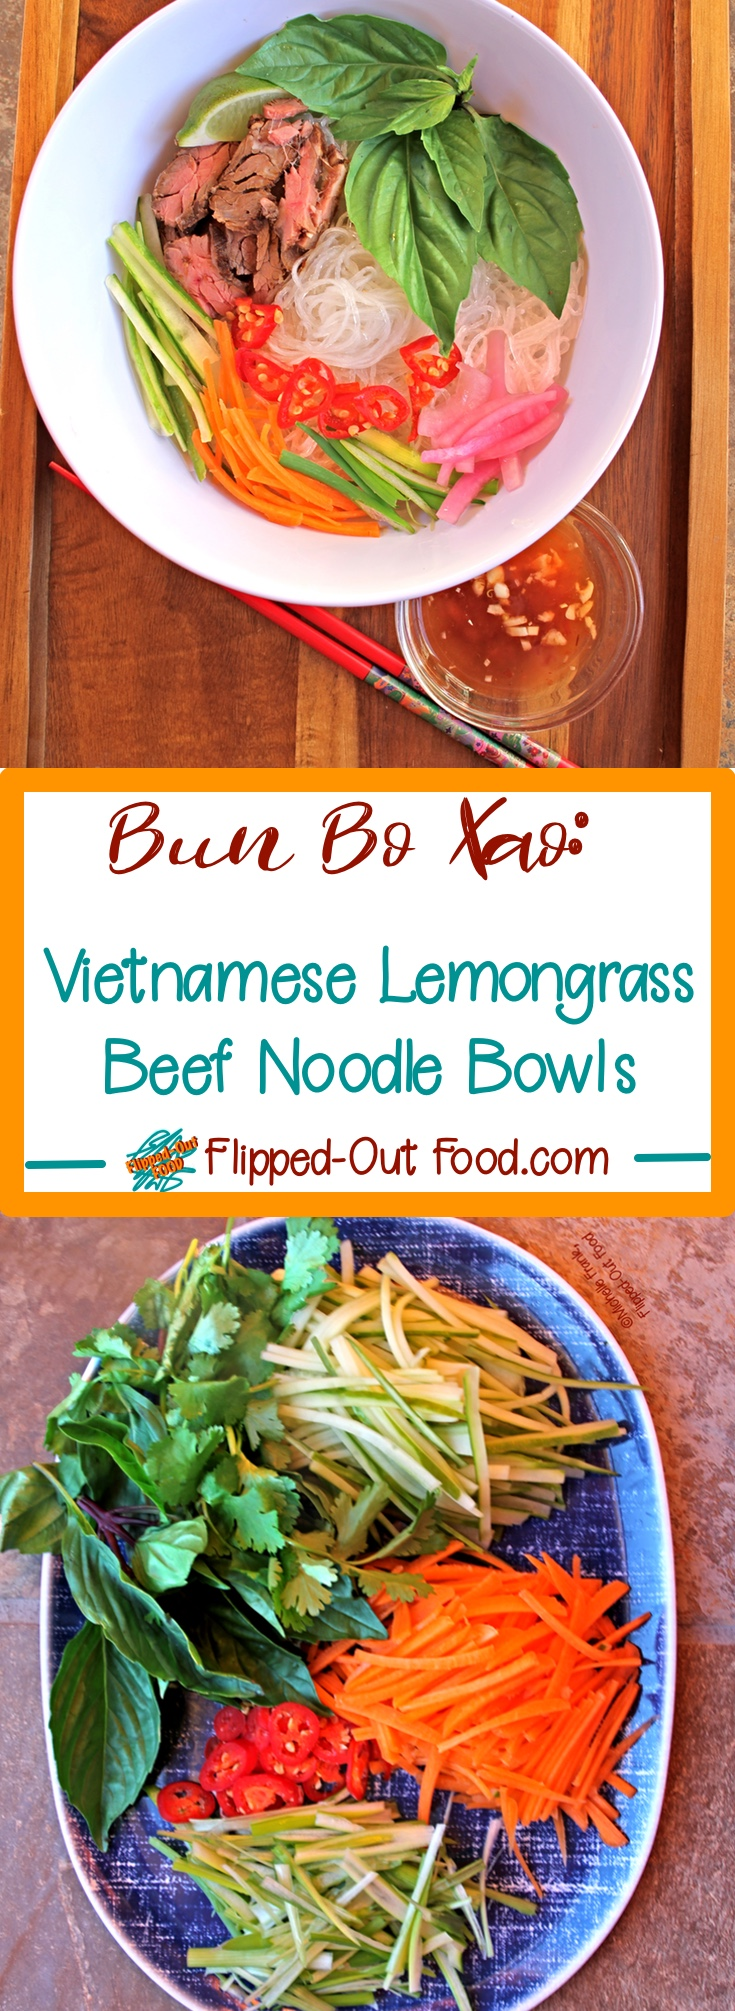 Vietnamese Lemongrass Beef Noodle Bowls, also known asBun Bo Xao, are a perfect meal for hot summer days. The noodles are eaten at room temperature with fresh vegetables, herbs, and a splash (or glug) of nuoc cham. The steak can be added hot from the skillet, chilled, or at room temperature. #bunbowl #vietnamesefood #bunboxao #healthyfood #healthyeating #coldnoodlesalad